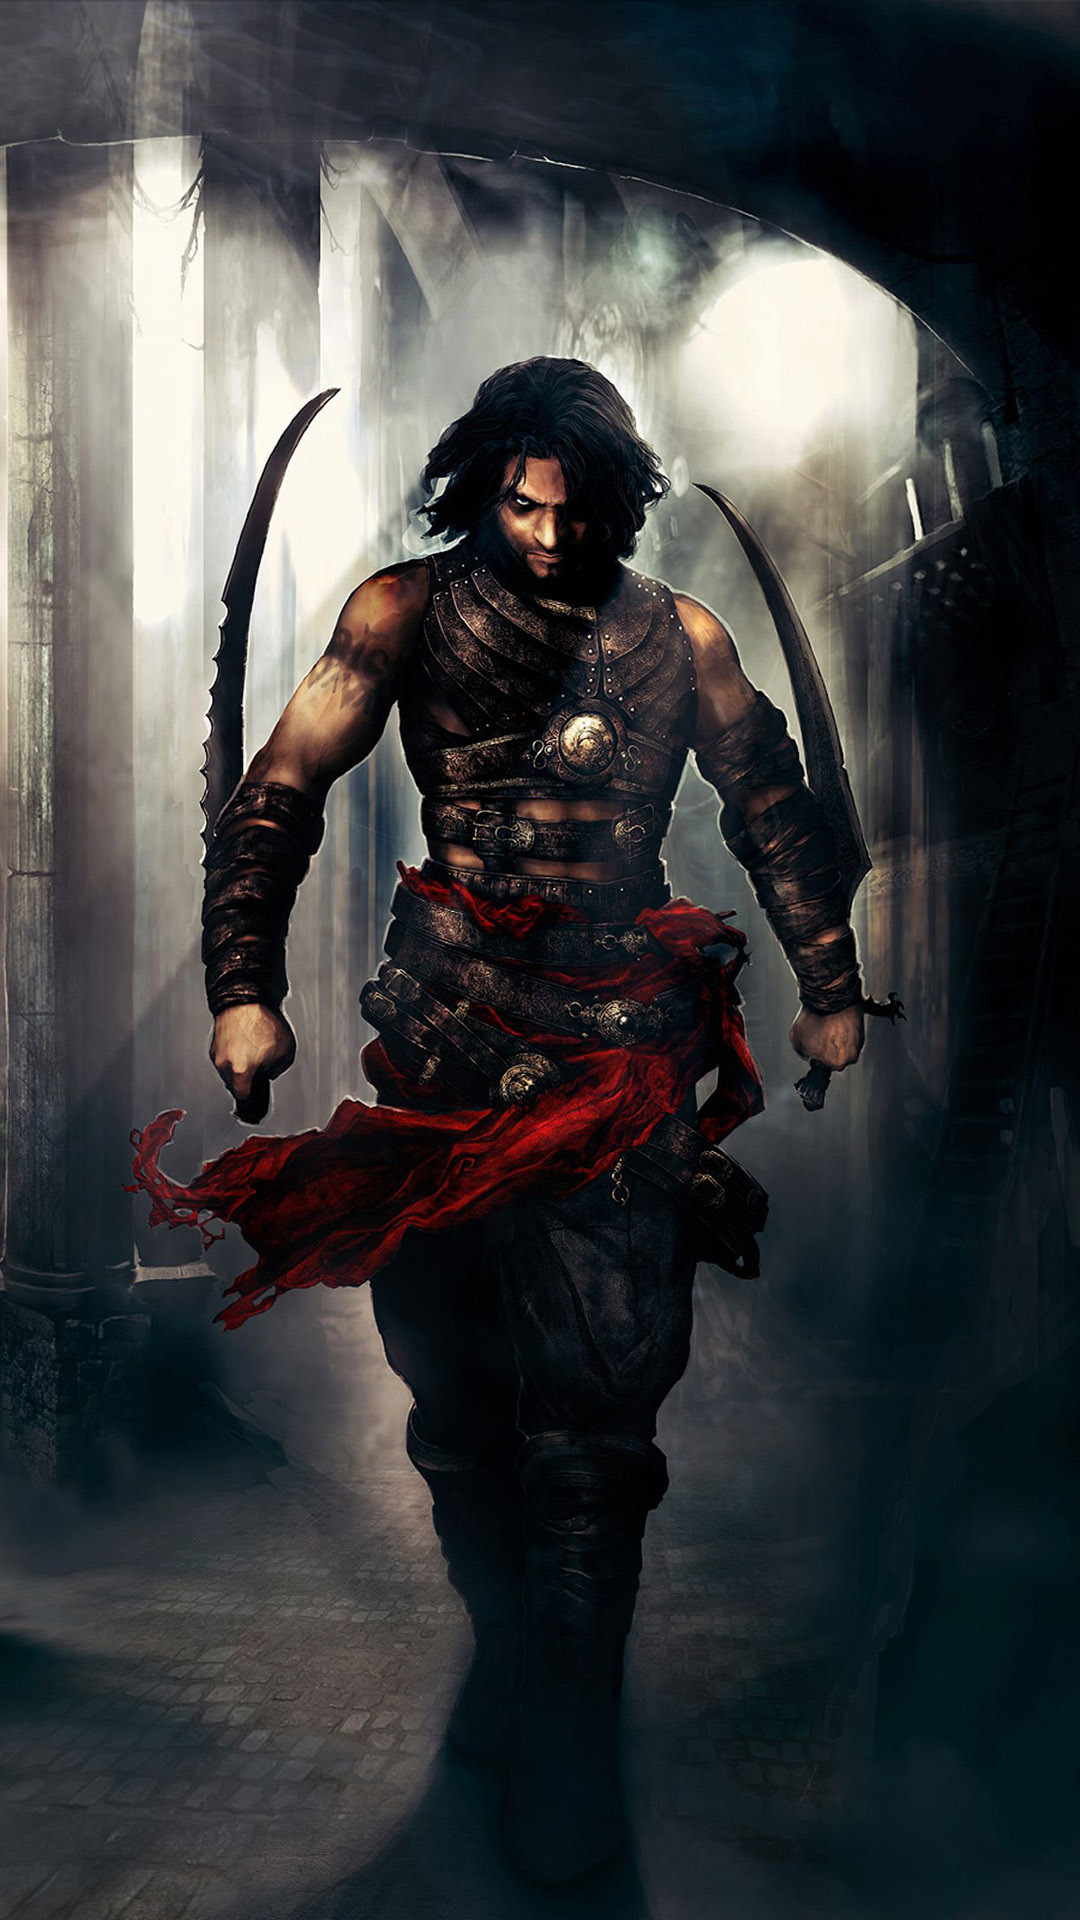 Prince Of Persia Wallpapers | Prince Of Persia Full HD Quality Wallpapers